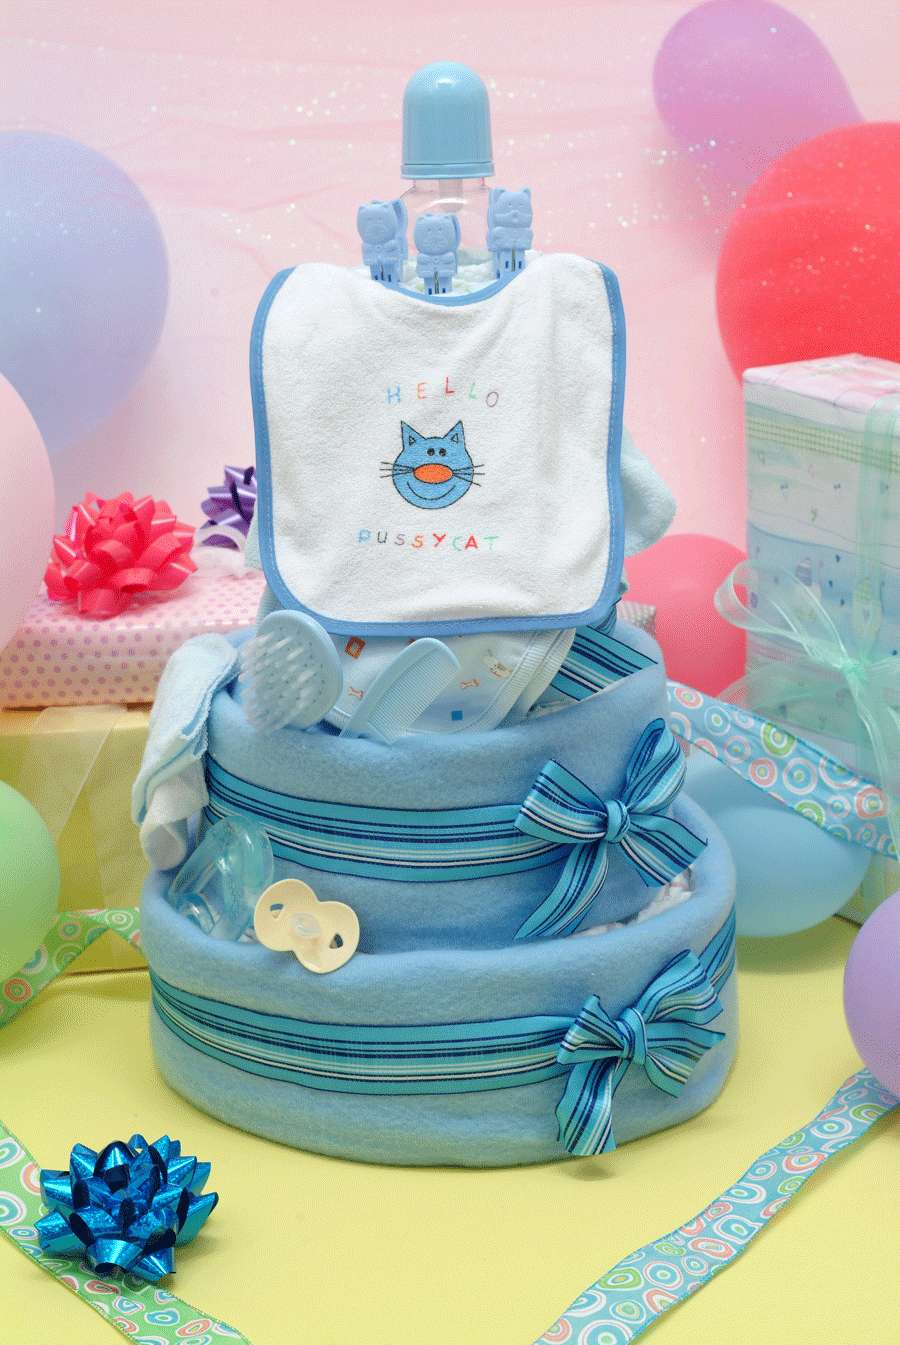 Baby shower idee orignali e divertenti foto mamma pourfemme - Idee baby shower ...